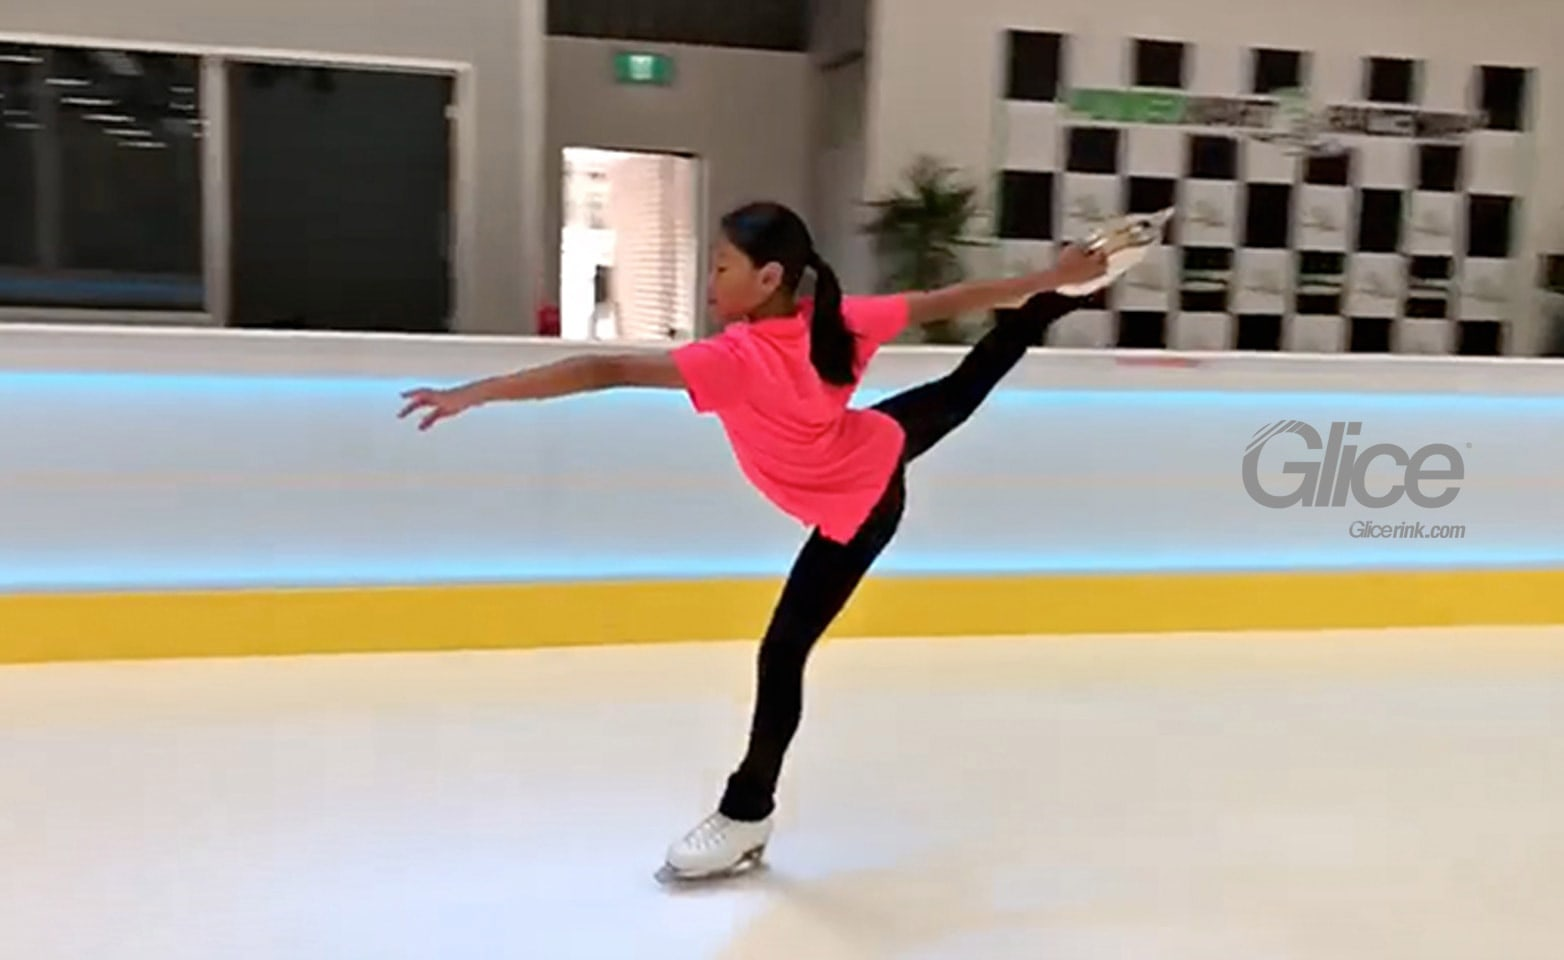 Figure skating performance on artificial ice on German TV show